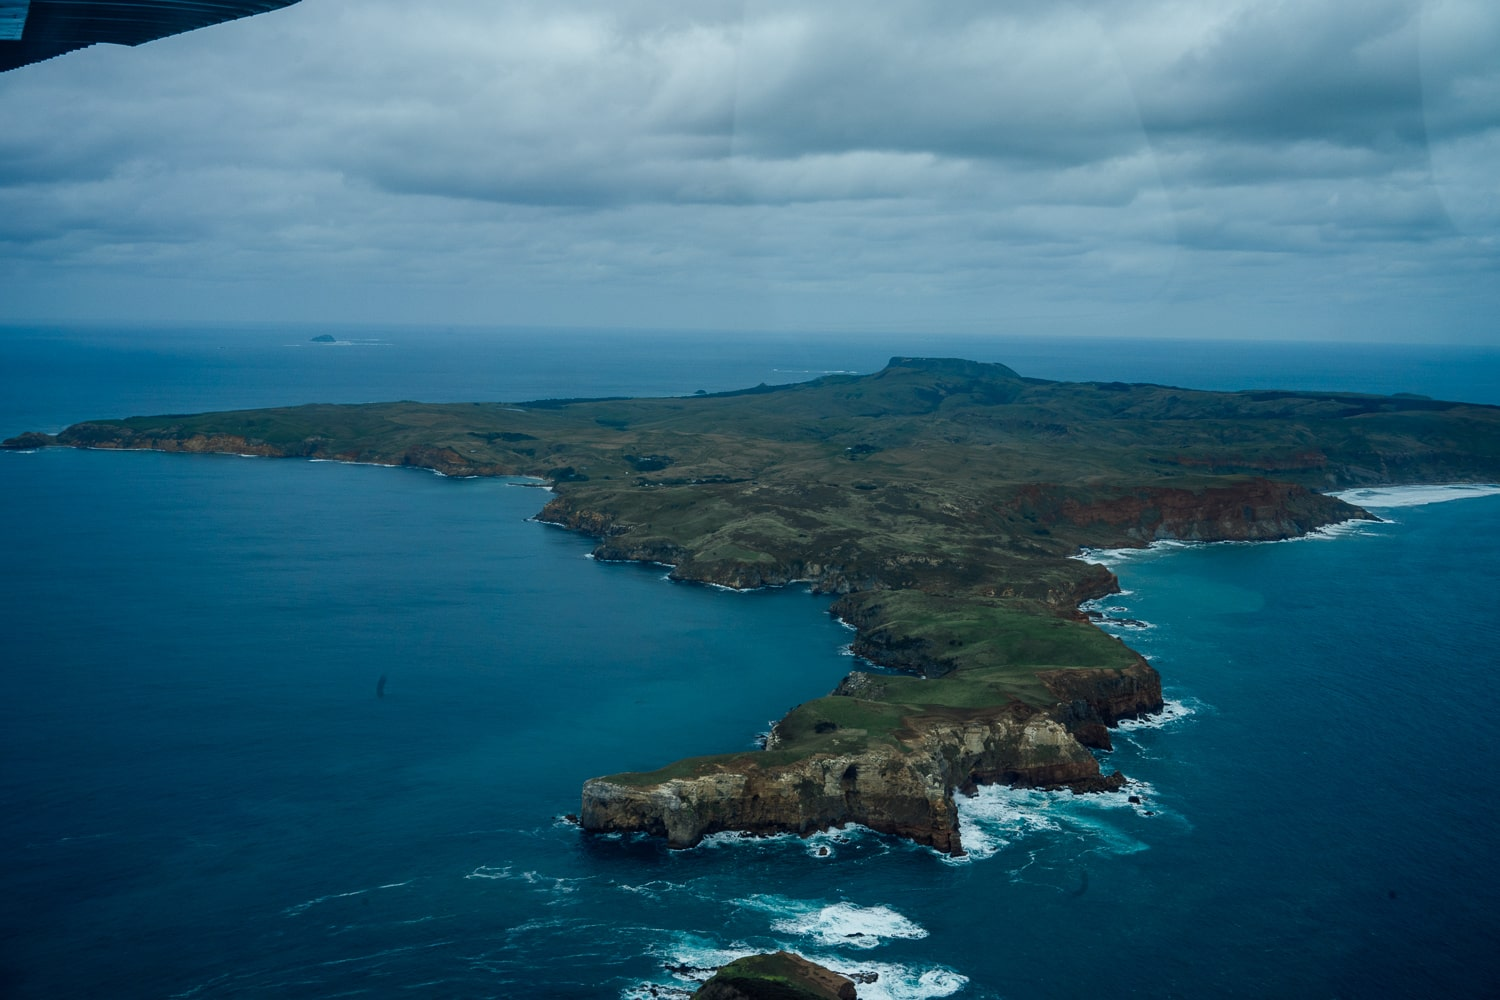 overlooking the chatham islands in the remotest part of New Zealand